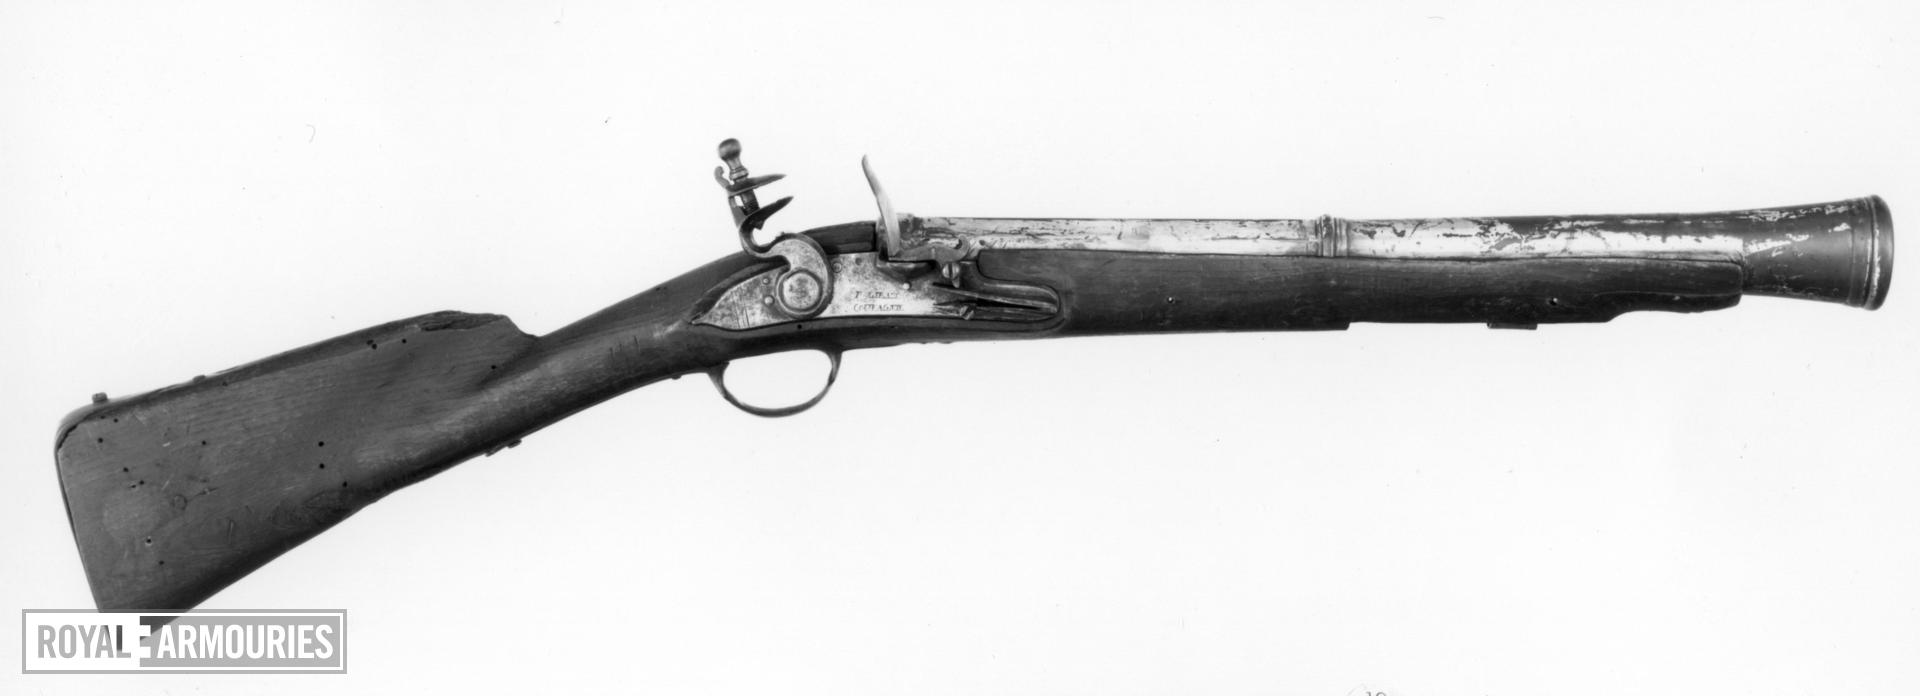 Flintlock muzzle-loading blunderbuss - By P. Girard and Compagnie